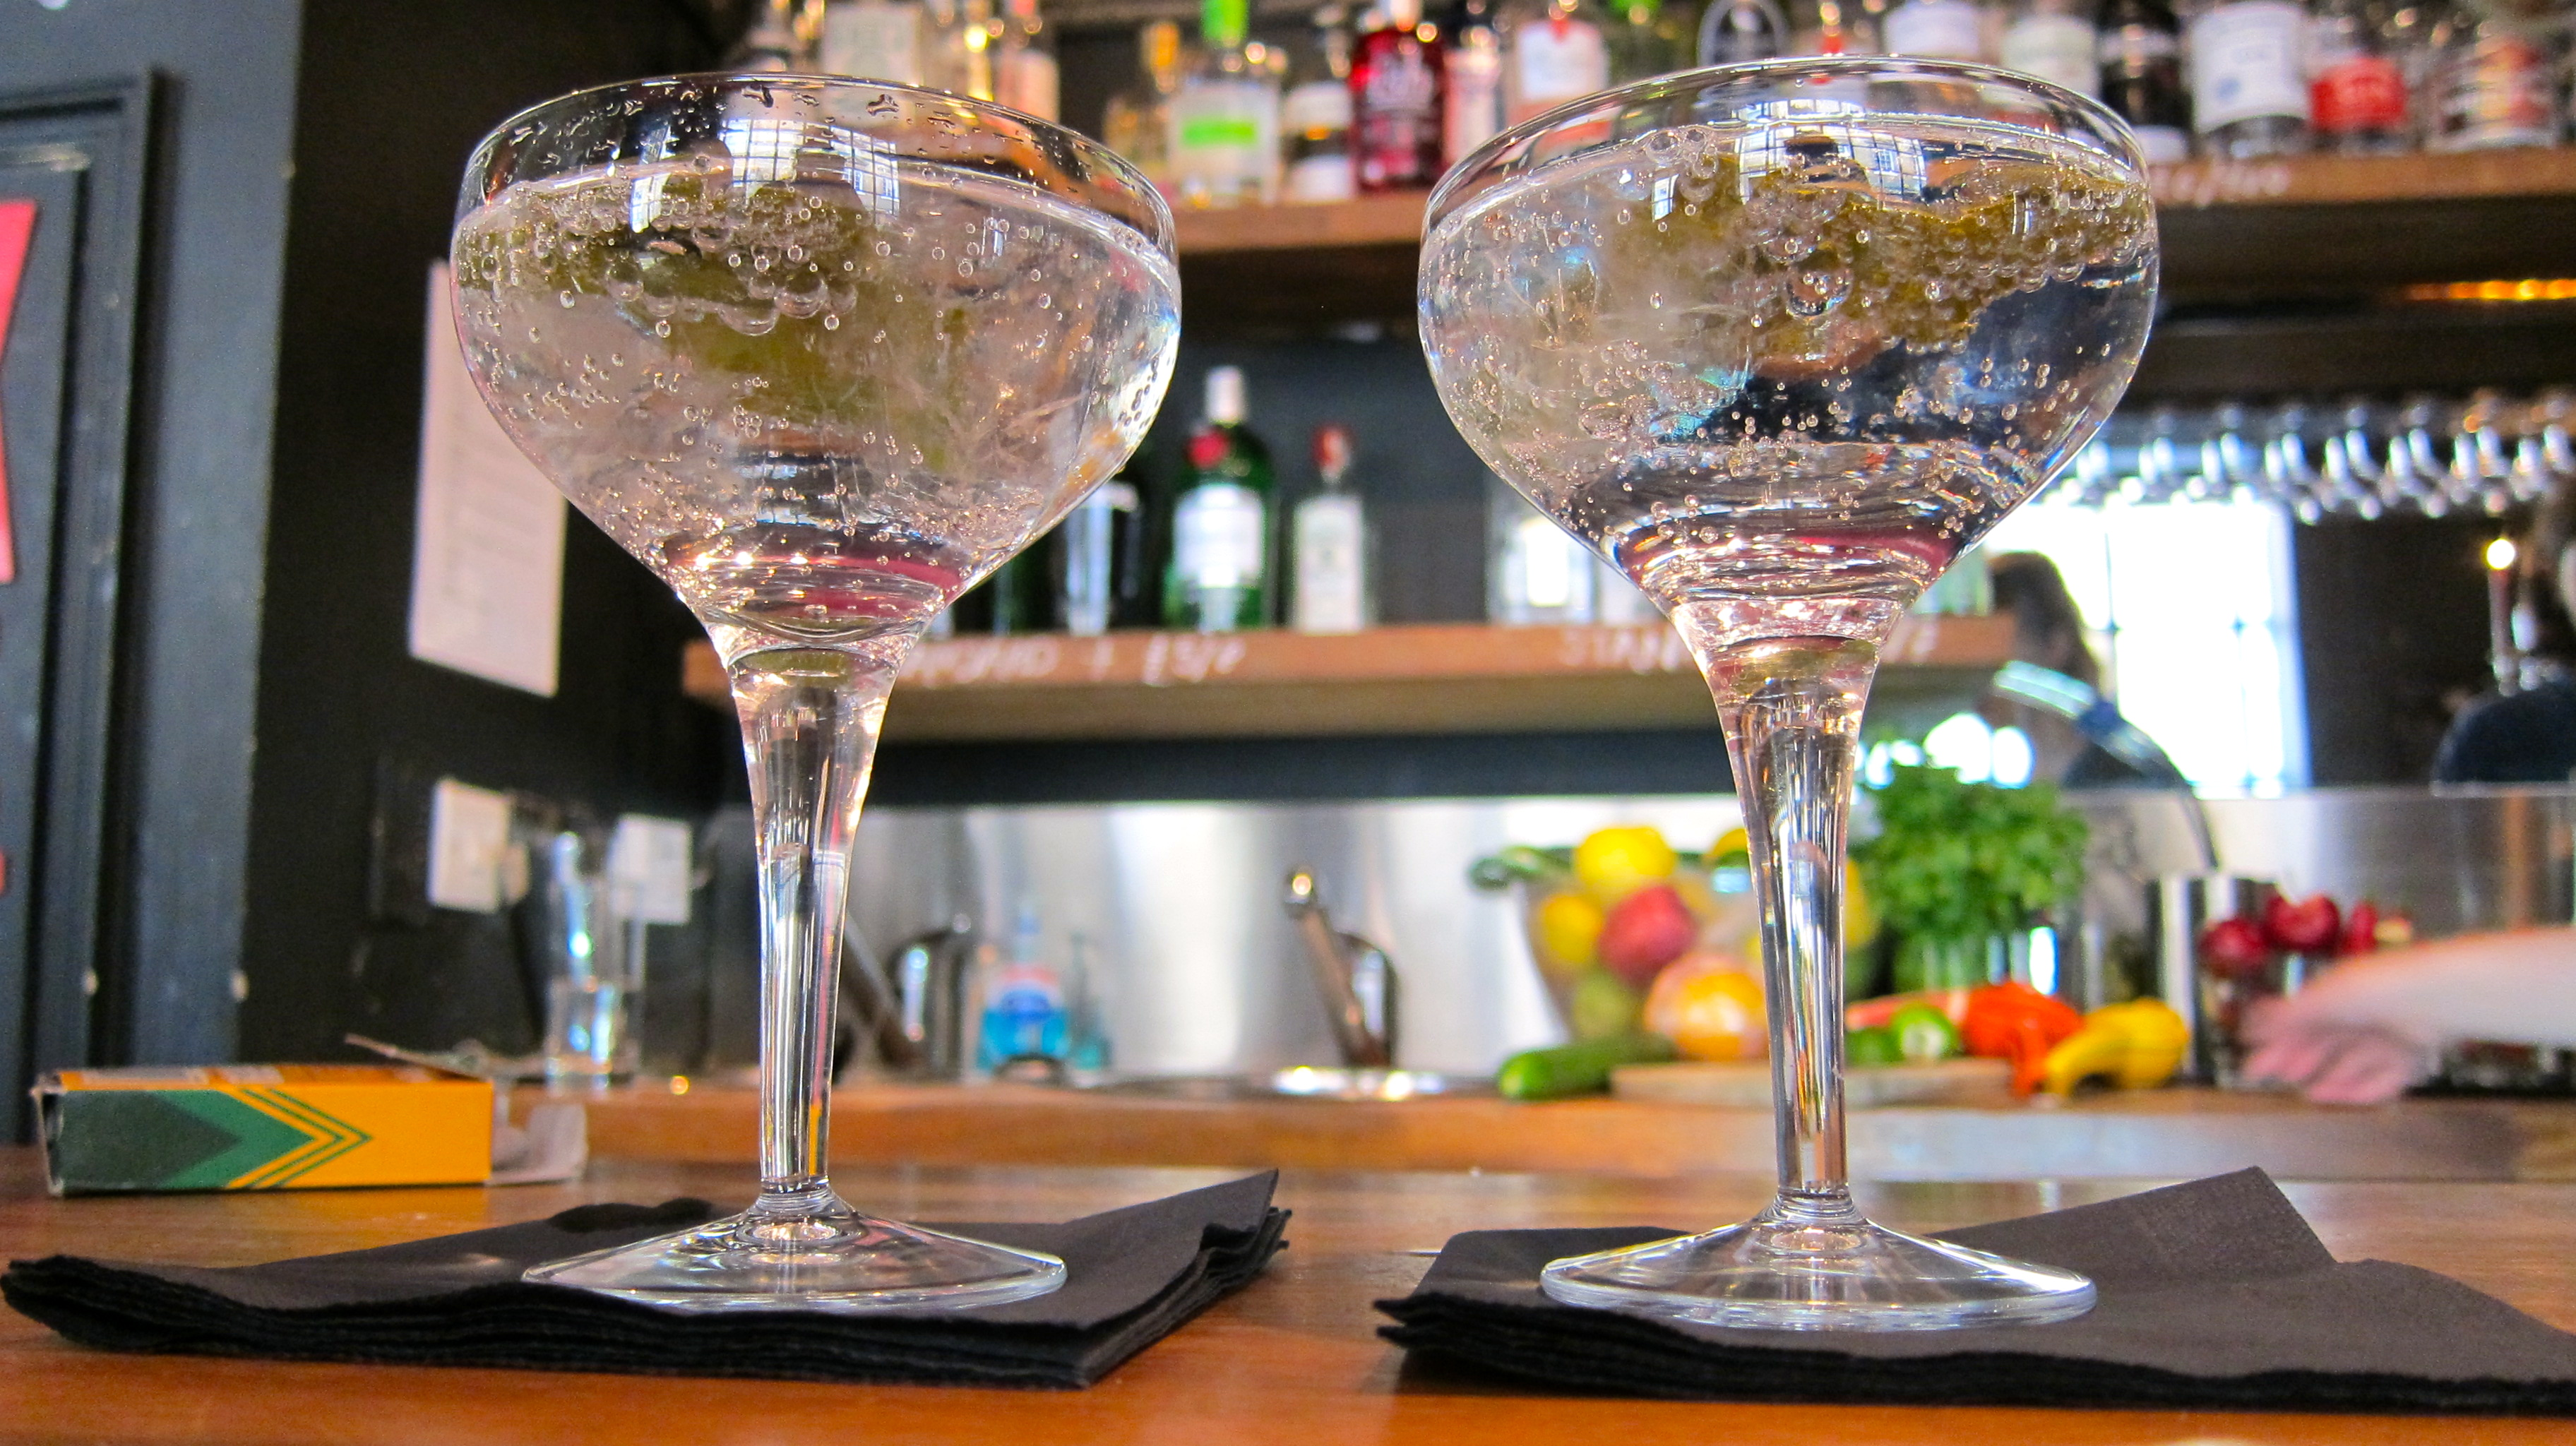 Bath Gin martinis